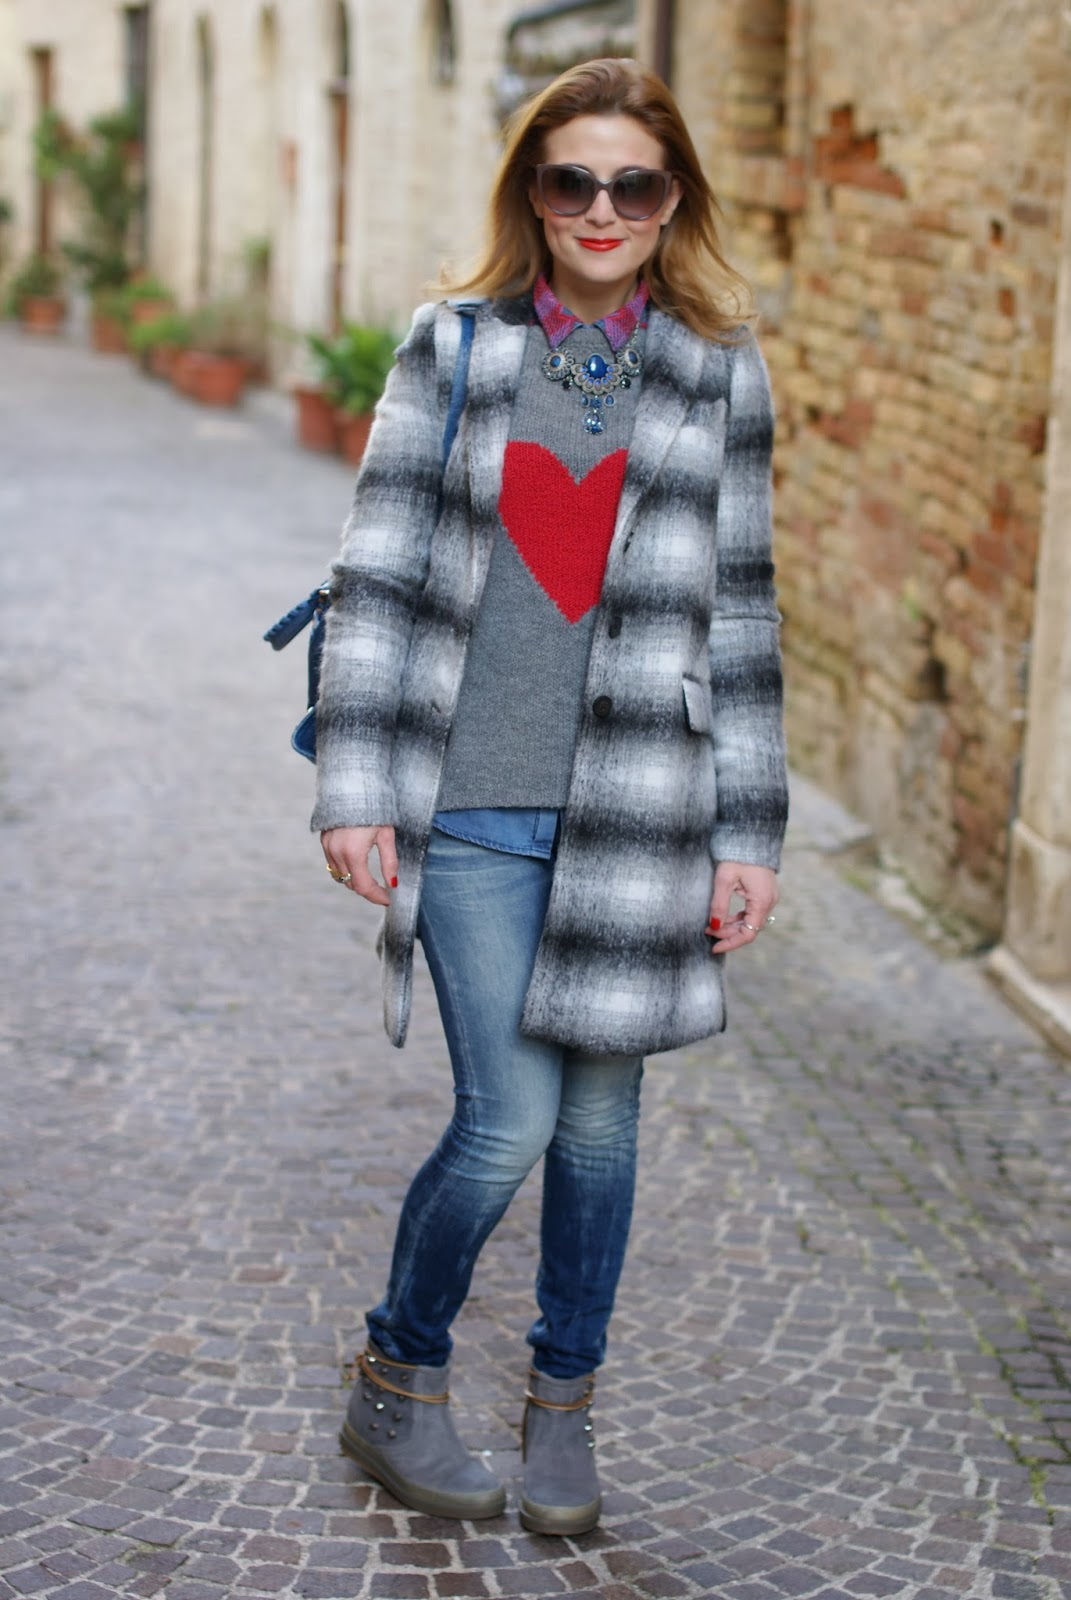 Zara checked coat, heart sweater, Balenciaga City cobalt blue, Ruco Line boots, Fashion and Cookies, fashion blogger